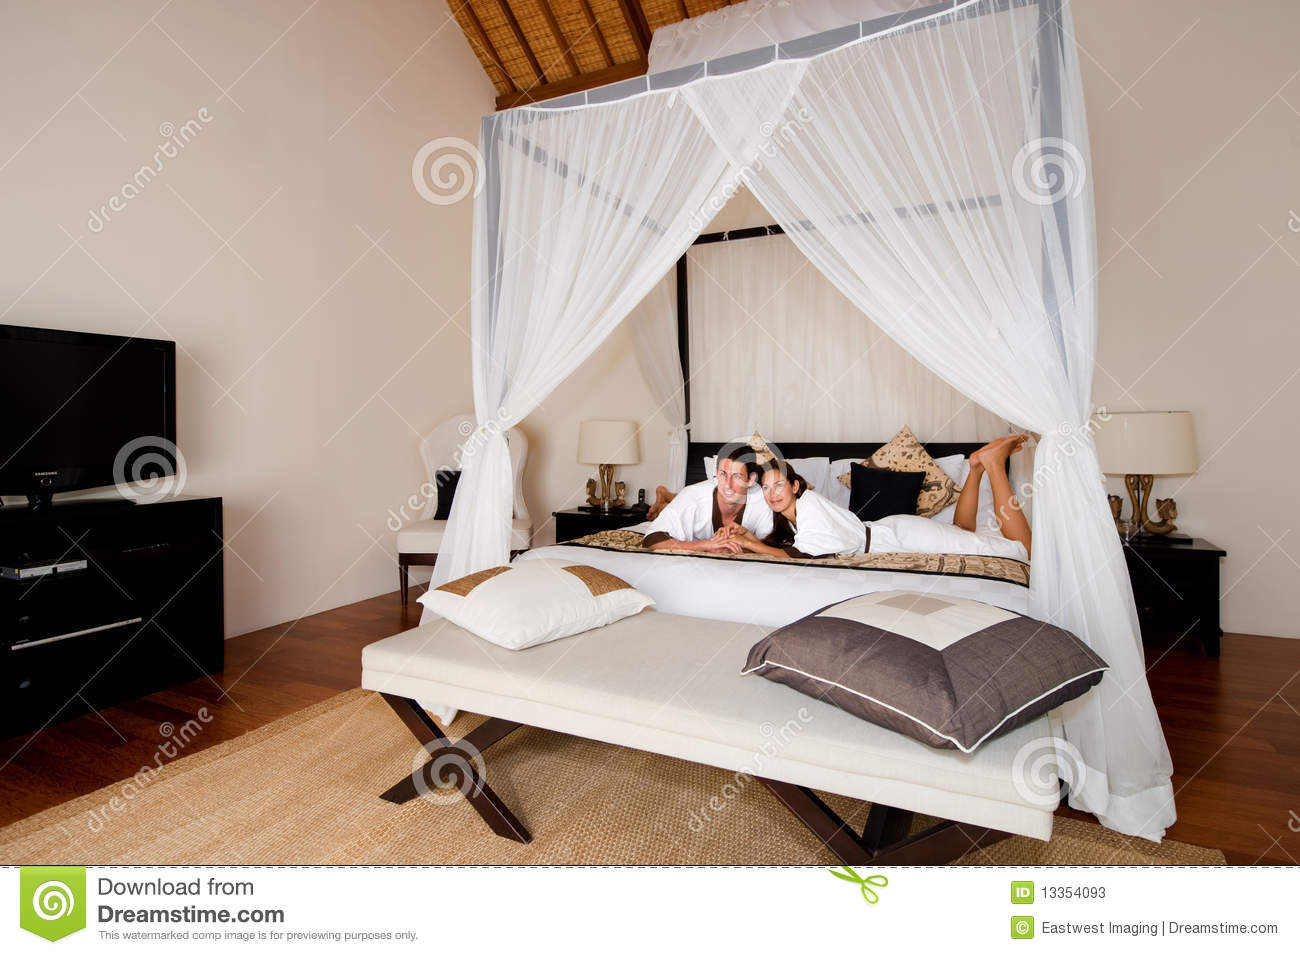 How To Be More Confident In Bed Couple Relaxing In Bedroom Stock Photos Image 13354093